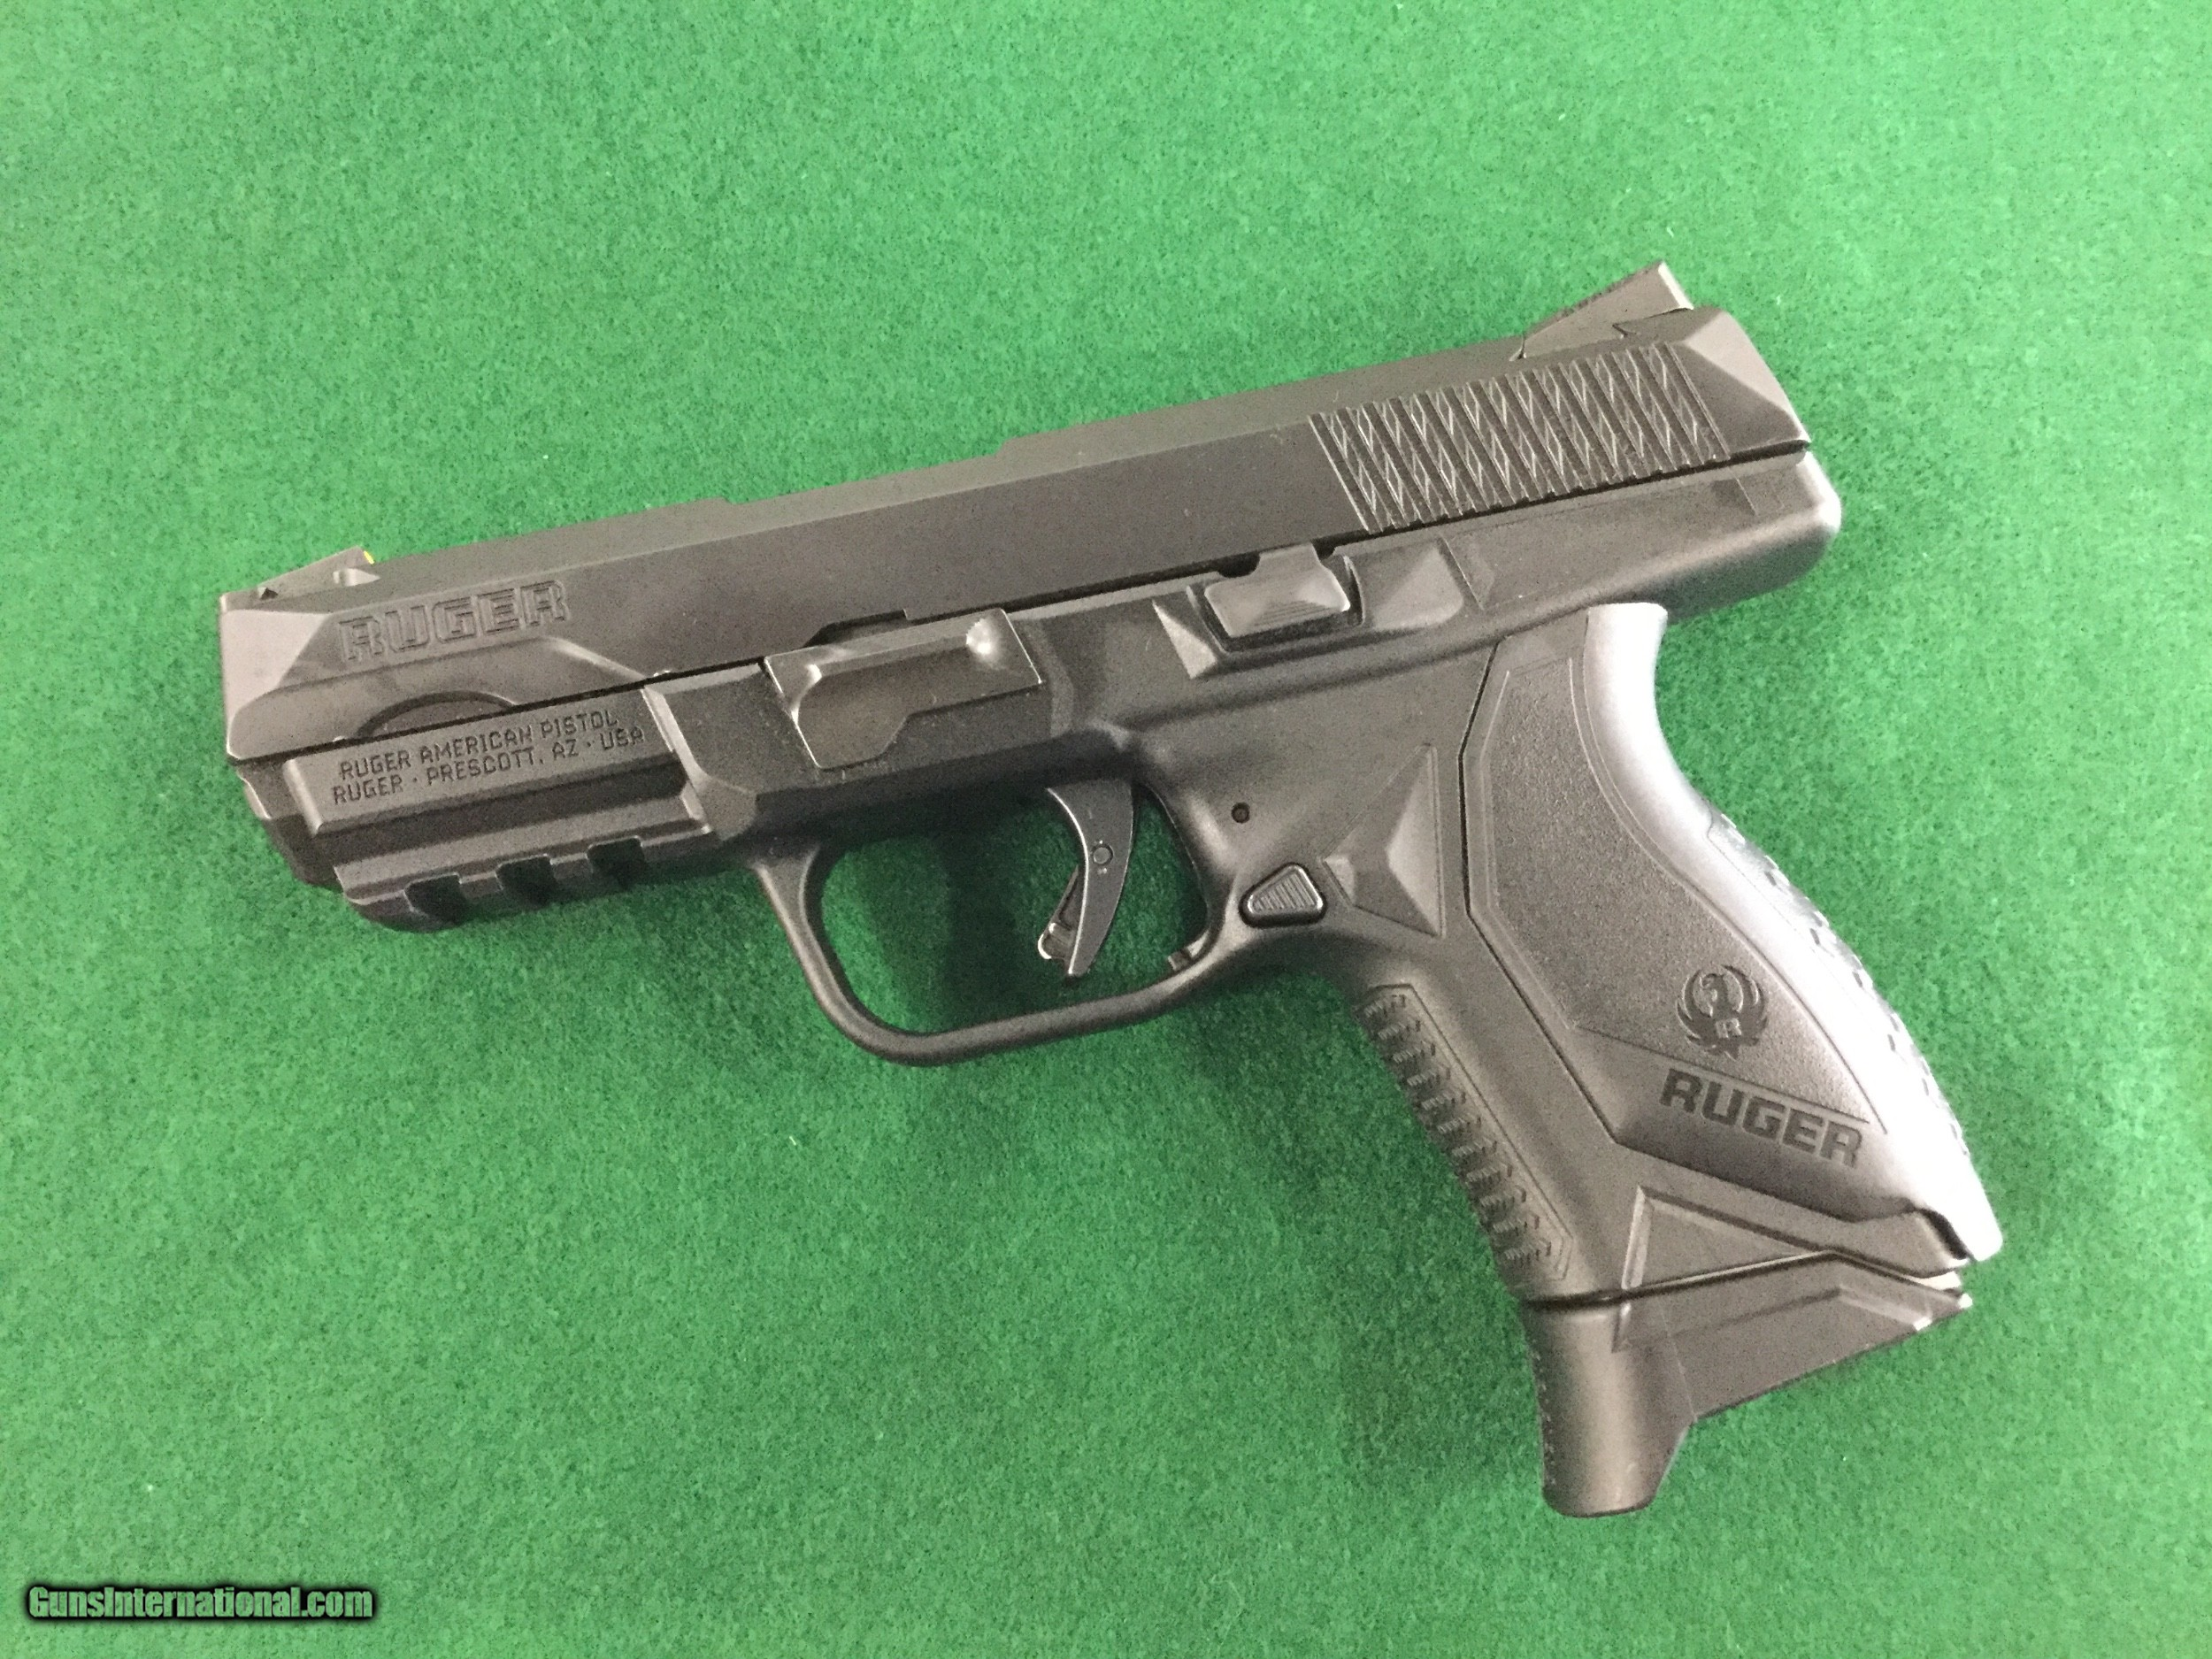 Ruger American Pro Compact 45acp